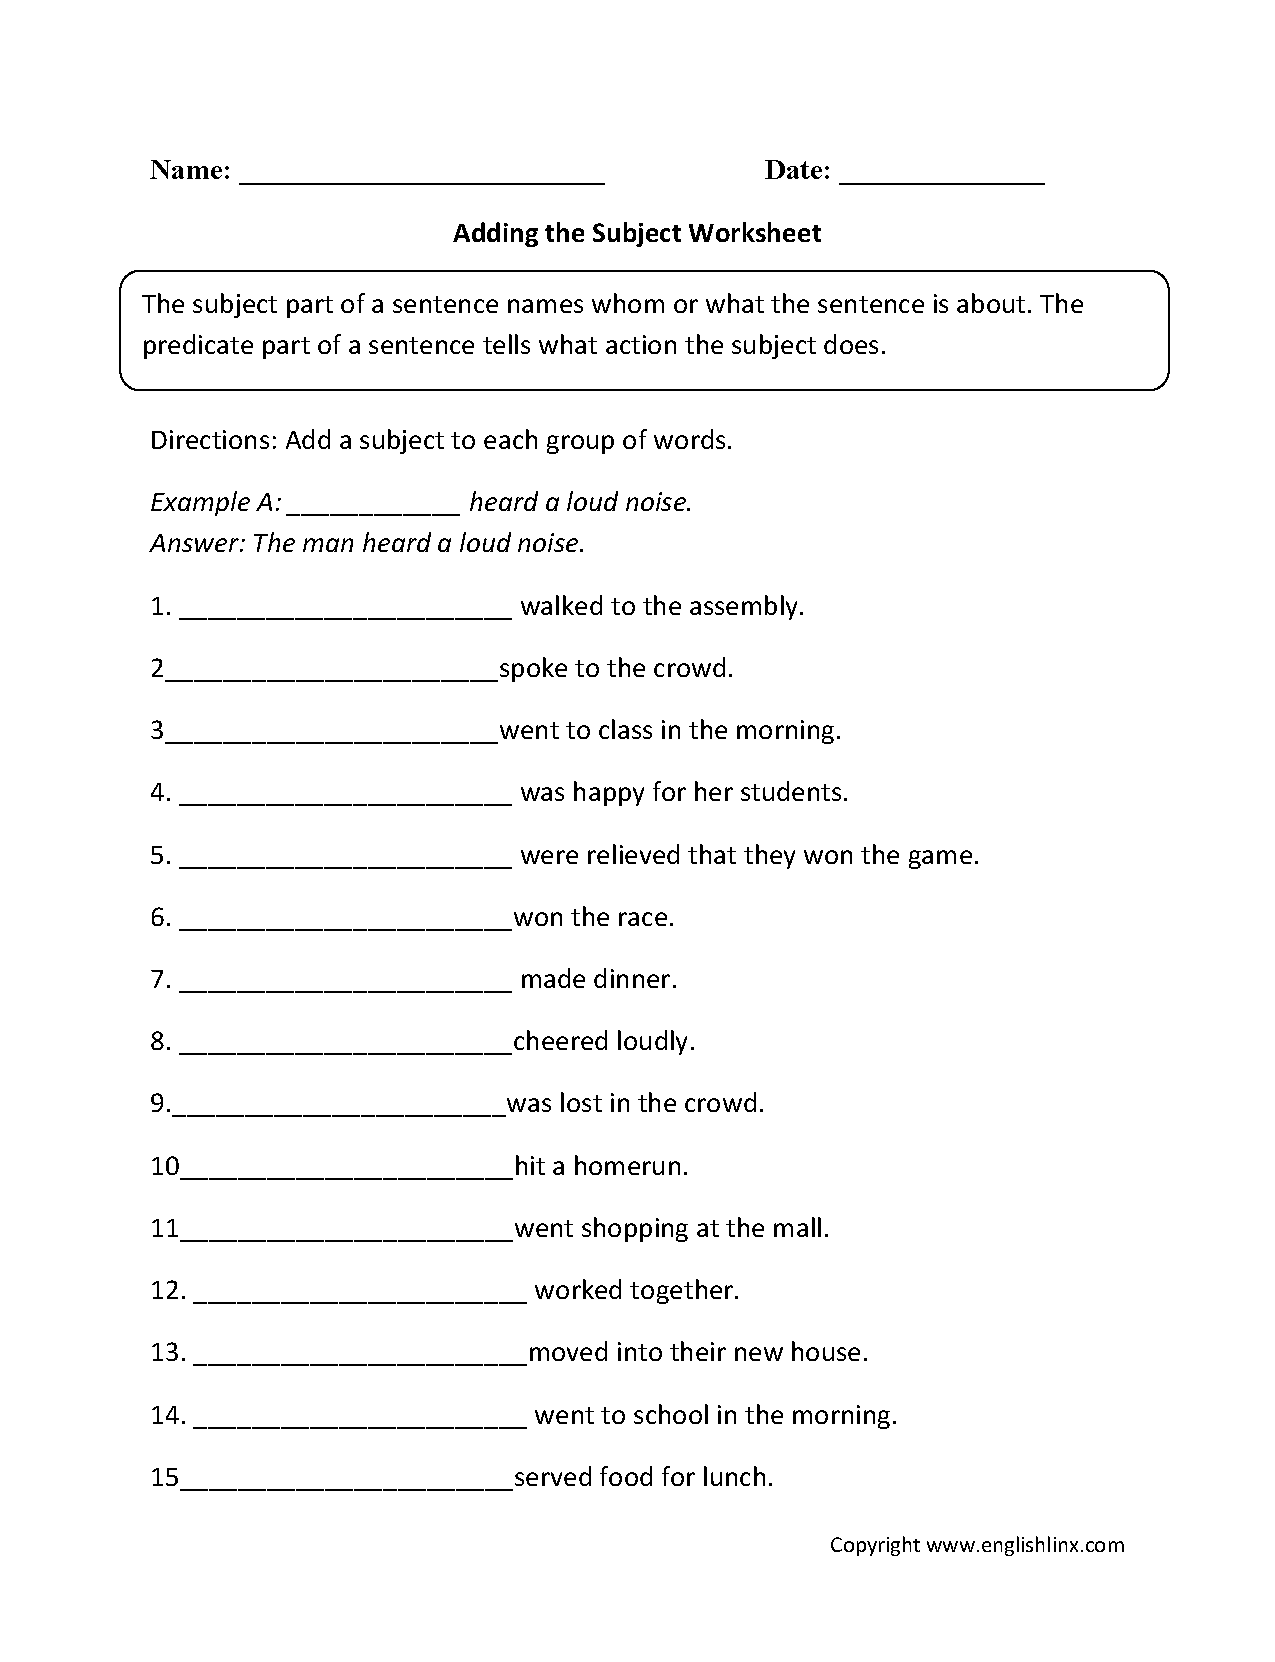 Worksheets 12th Grade English Worksheets englishlinx com subject and predicate worksheets adding a worksheet